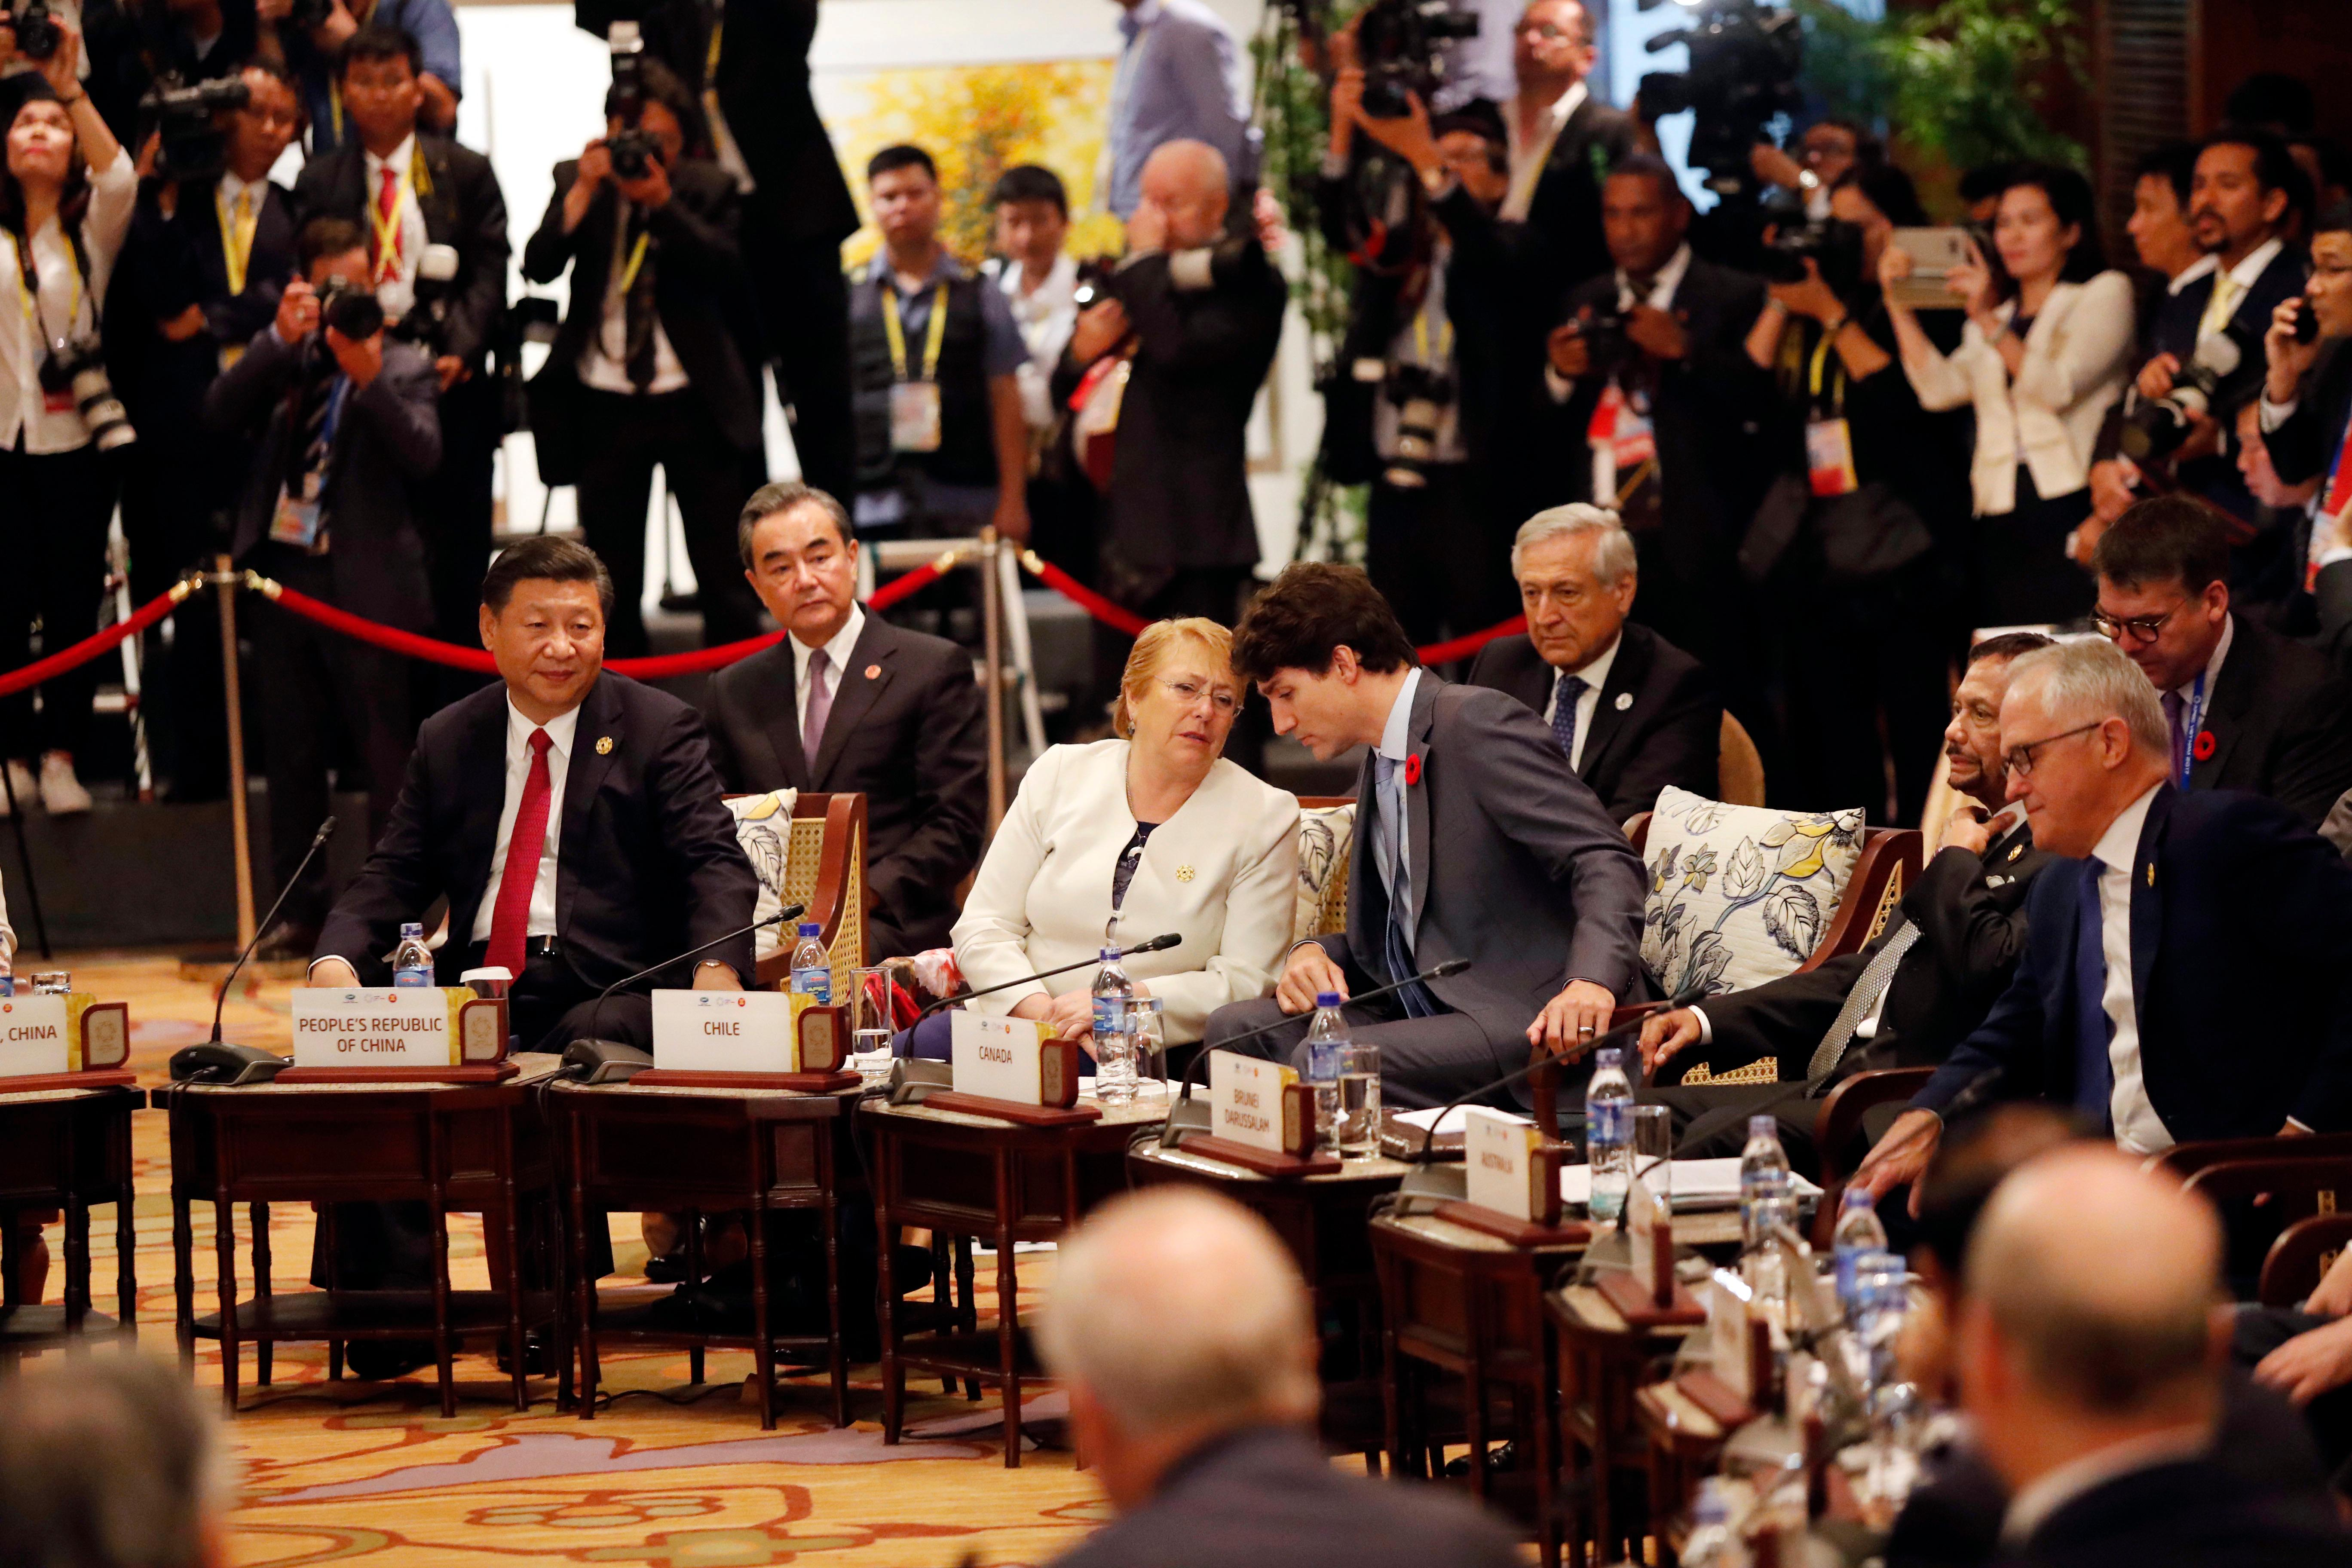 From left, China's President Xi Jinping, Chile's President Michelle Bachelet, Canada's Prime Minister Justin Trudeau, Brunei's Sultan Hassanal Bolkiah and Australia's Prime Minister Malcolm Turnbull  attend the APEC-ASEAN dialogue, on the sidelines of the APEC summit, in Danang, Vietnam Friday, Nov. 10, 2017. (Jorge Silva/Pool Photo via AP)